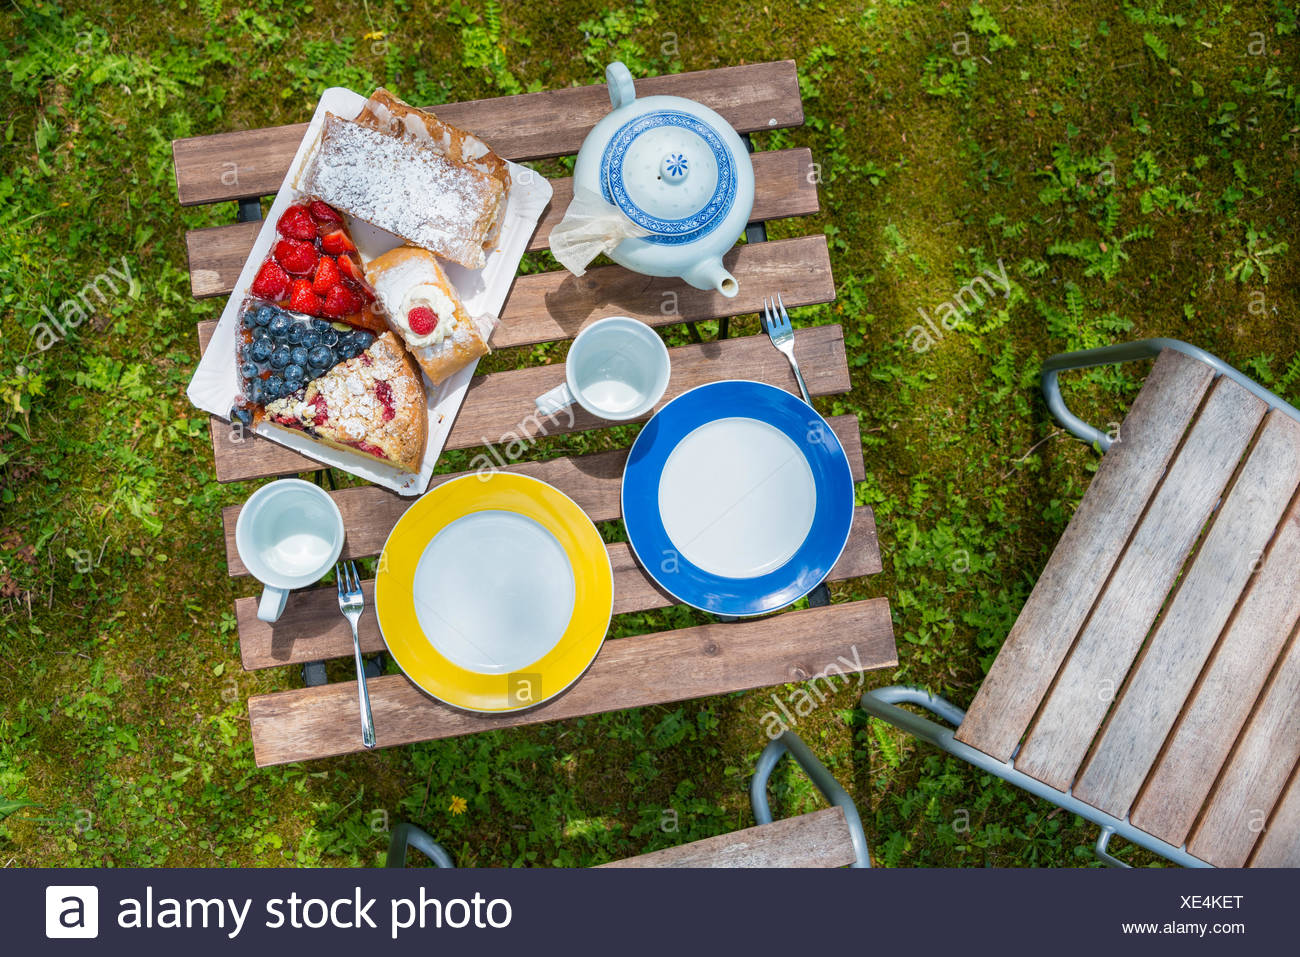 Laid garden table with cake and tea - Stock Image